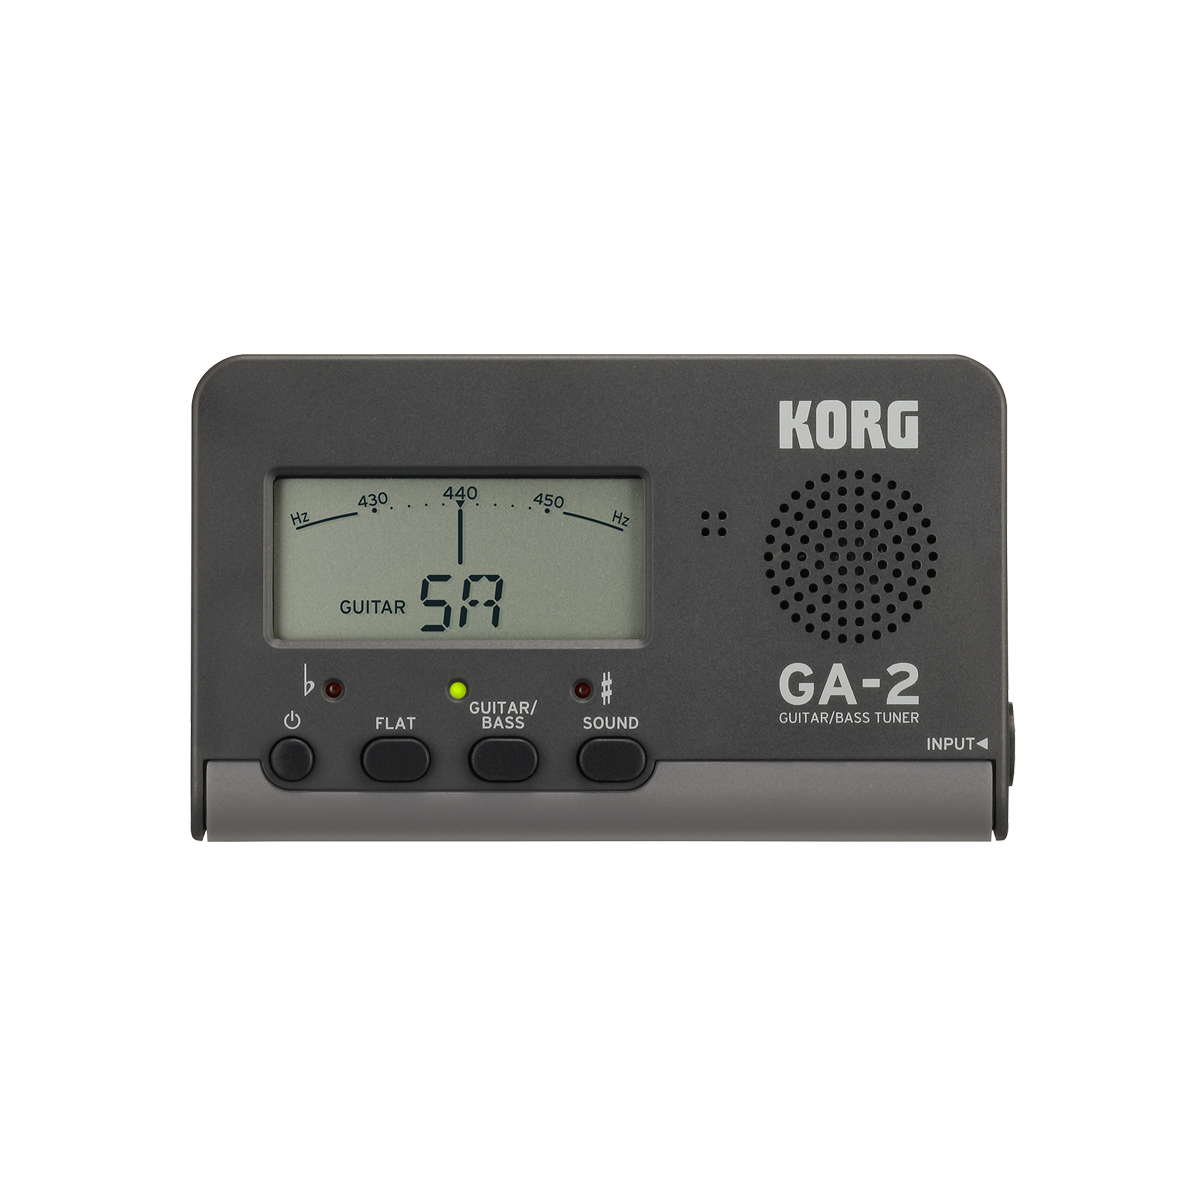 Korg - GA-2 Guitar/Bass Tuner-Instrument-Korg-Music Elements